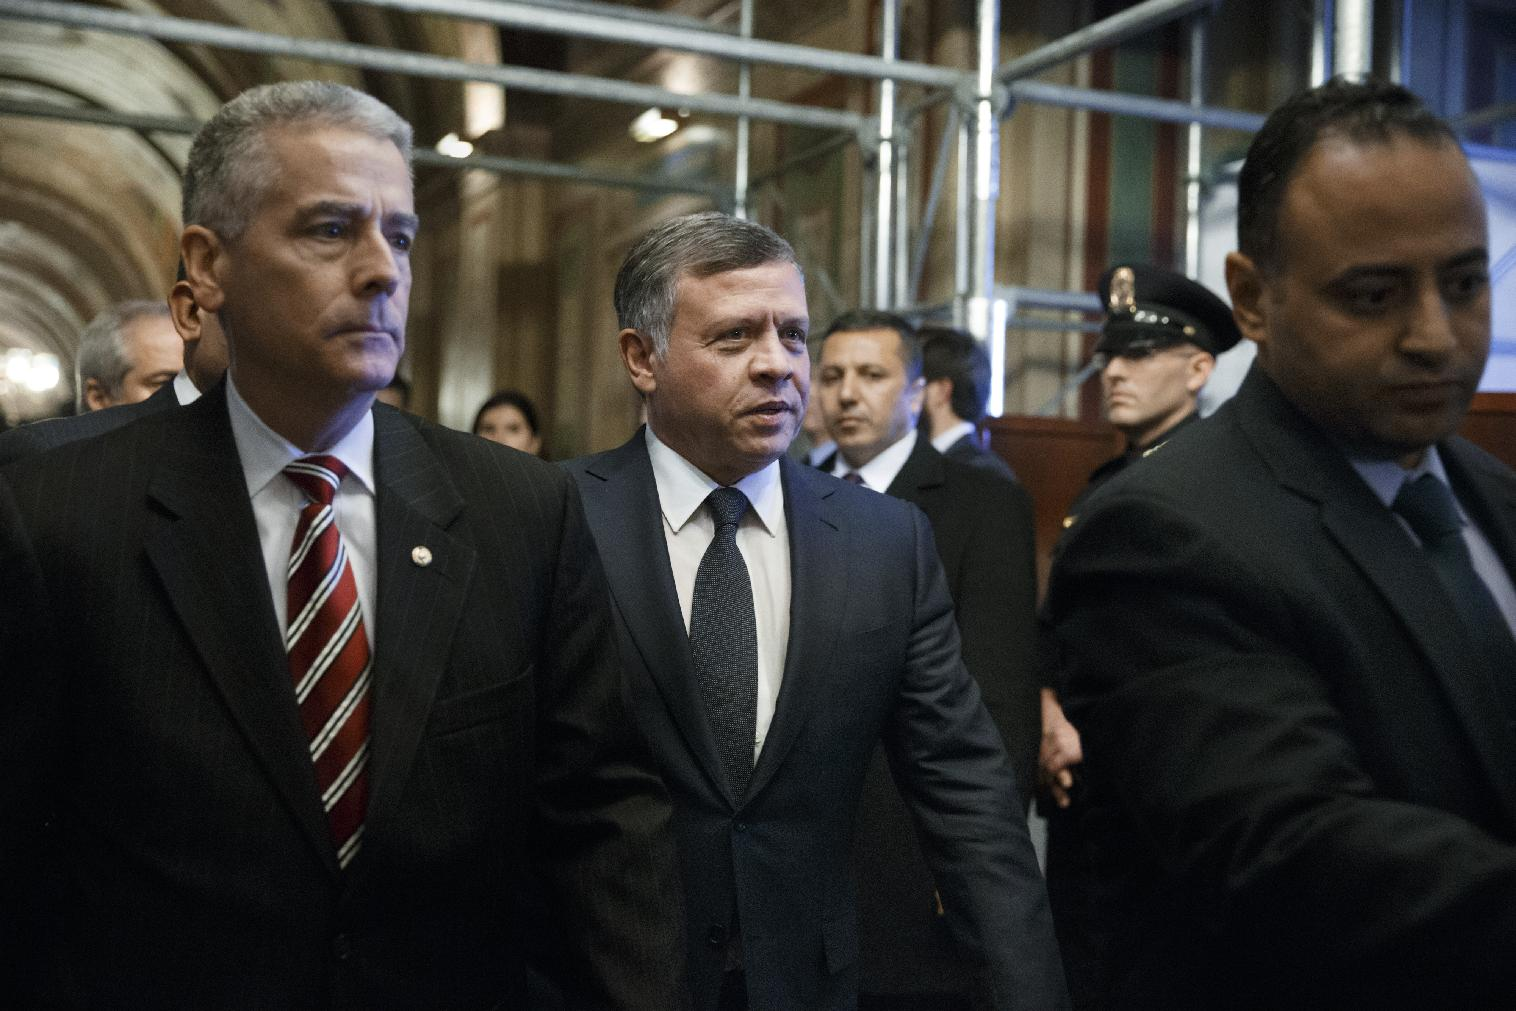 King Abdullah of Jordan , center, is hurried into a meeting with leaders of the Senate Foreign Relations Committee at the Capitol in Washington, Tuesday, Feb. 3, 2015. It was announced today that a Jordanian pilot captured by the Islamic State has been killed. A video released online Tuesday purportedly showed a Jordanian pilot captured by the Islamic State extremist group in Syria being burned to death by his captors following a weeklong drama over a possible prisoner exchange. Jordan threatened a harsh response to the killing of Lt. Muath Al-Kaseasbeh, 26, who fell into the hands of the militants in December when his F-16 crashed in Syria. (AP Photo/J. Scott Applewhite)